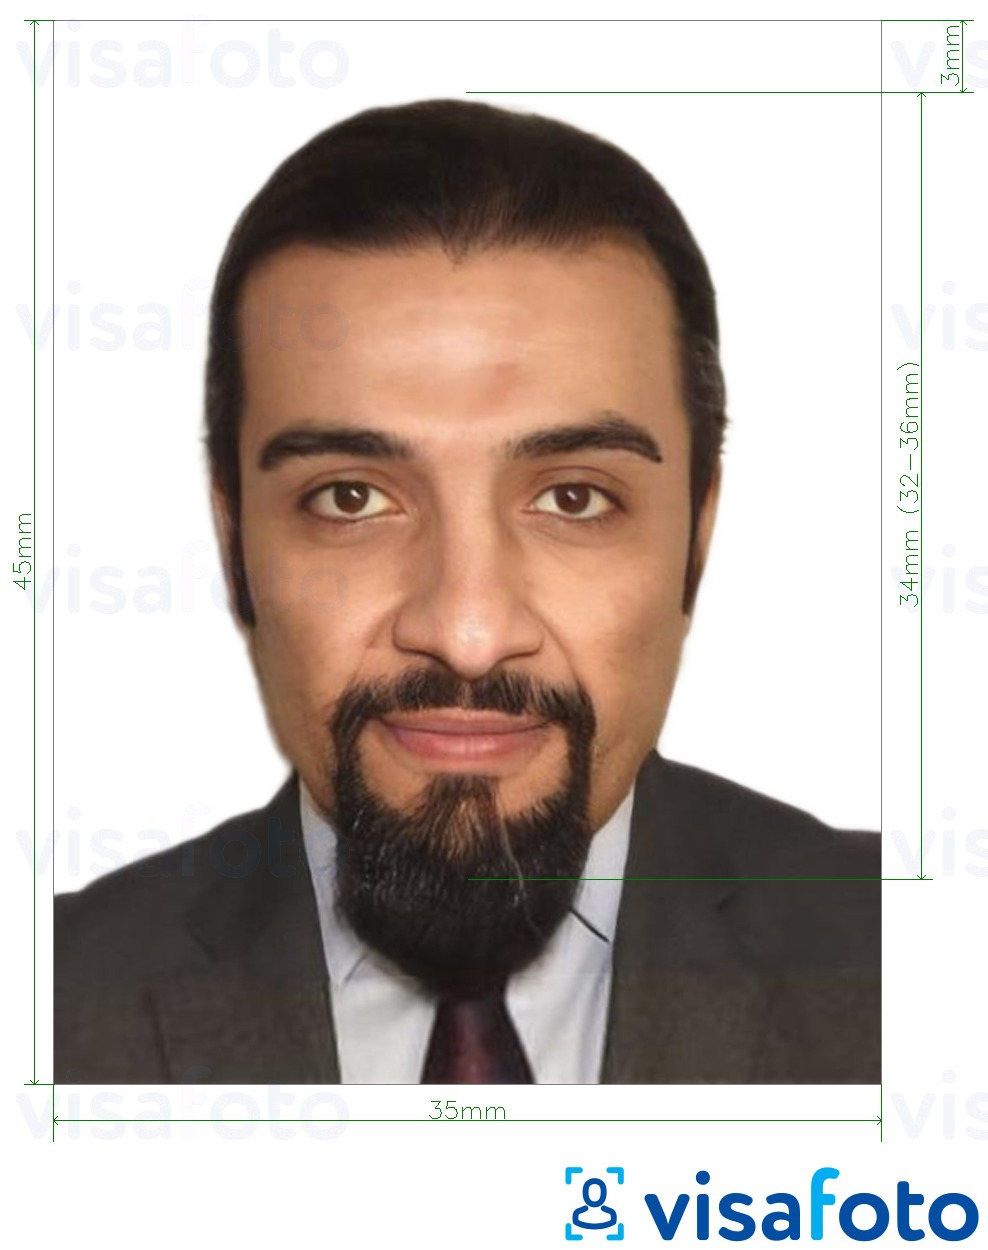 Example of photo for Lebanon ID card 3.5x4.5 cm (35x45 mm) with exact size specification